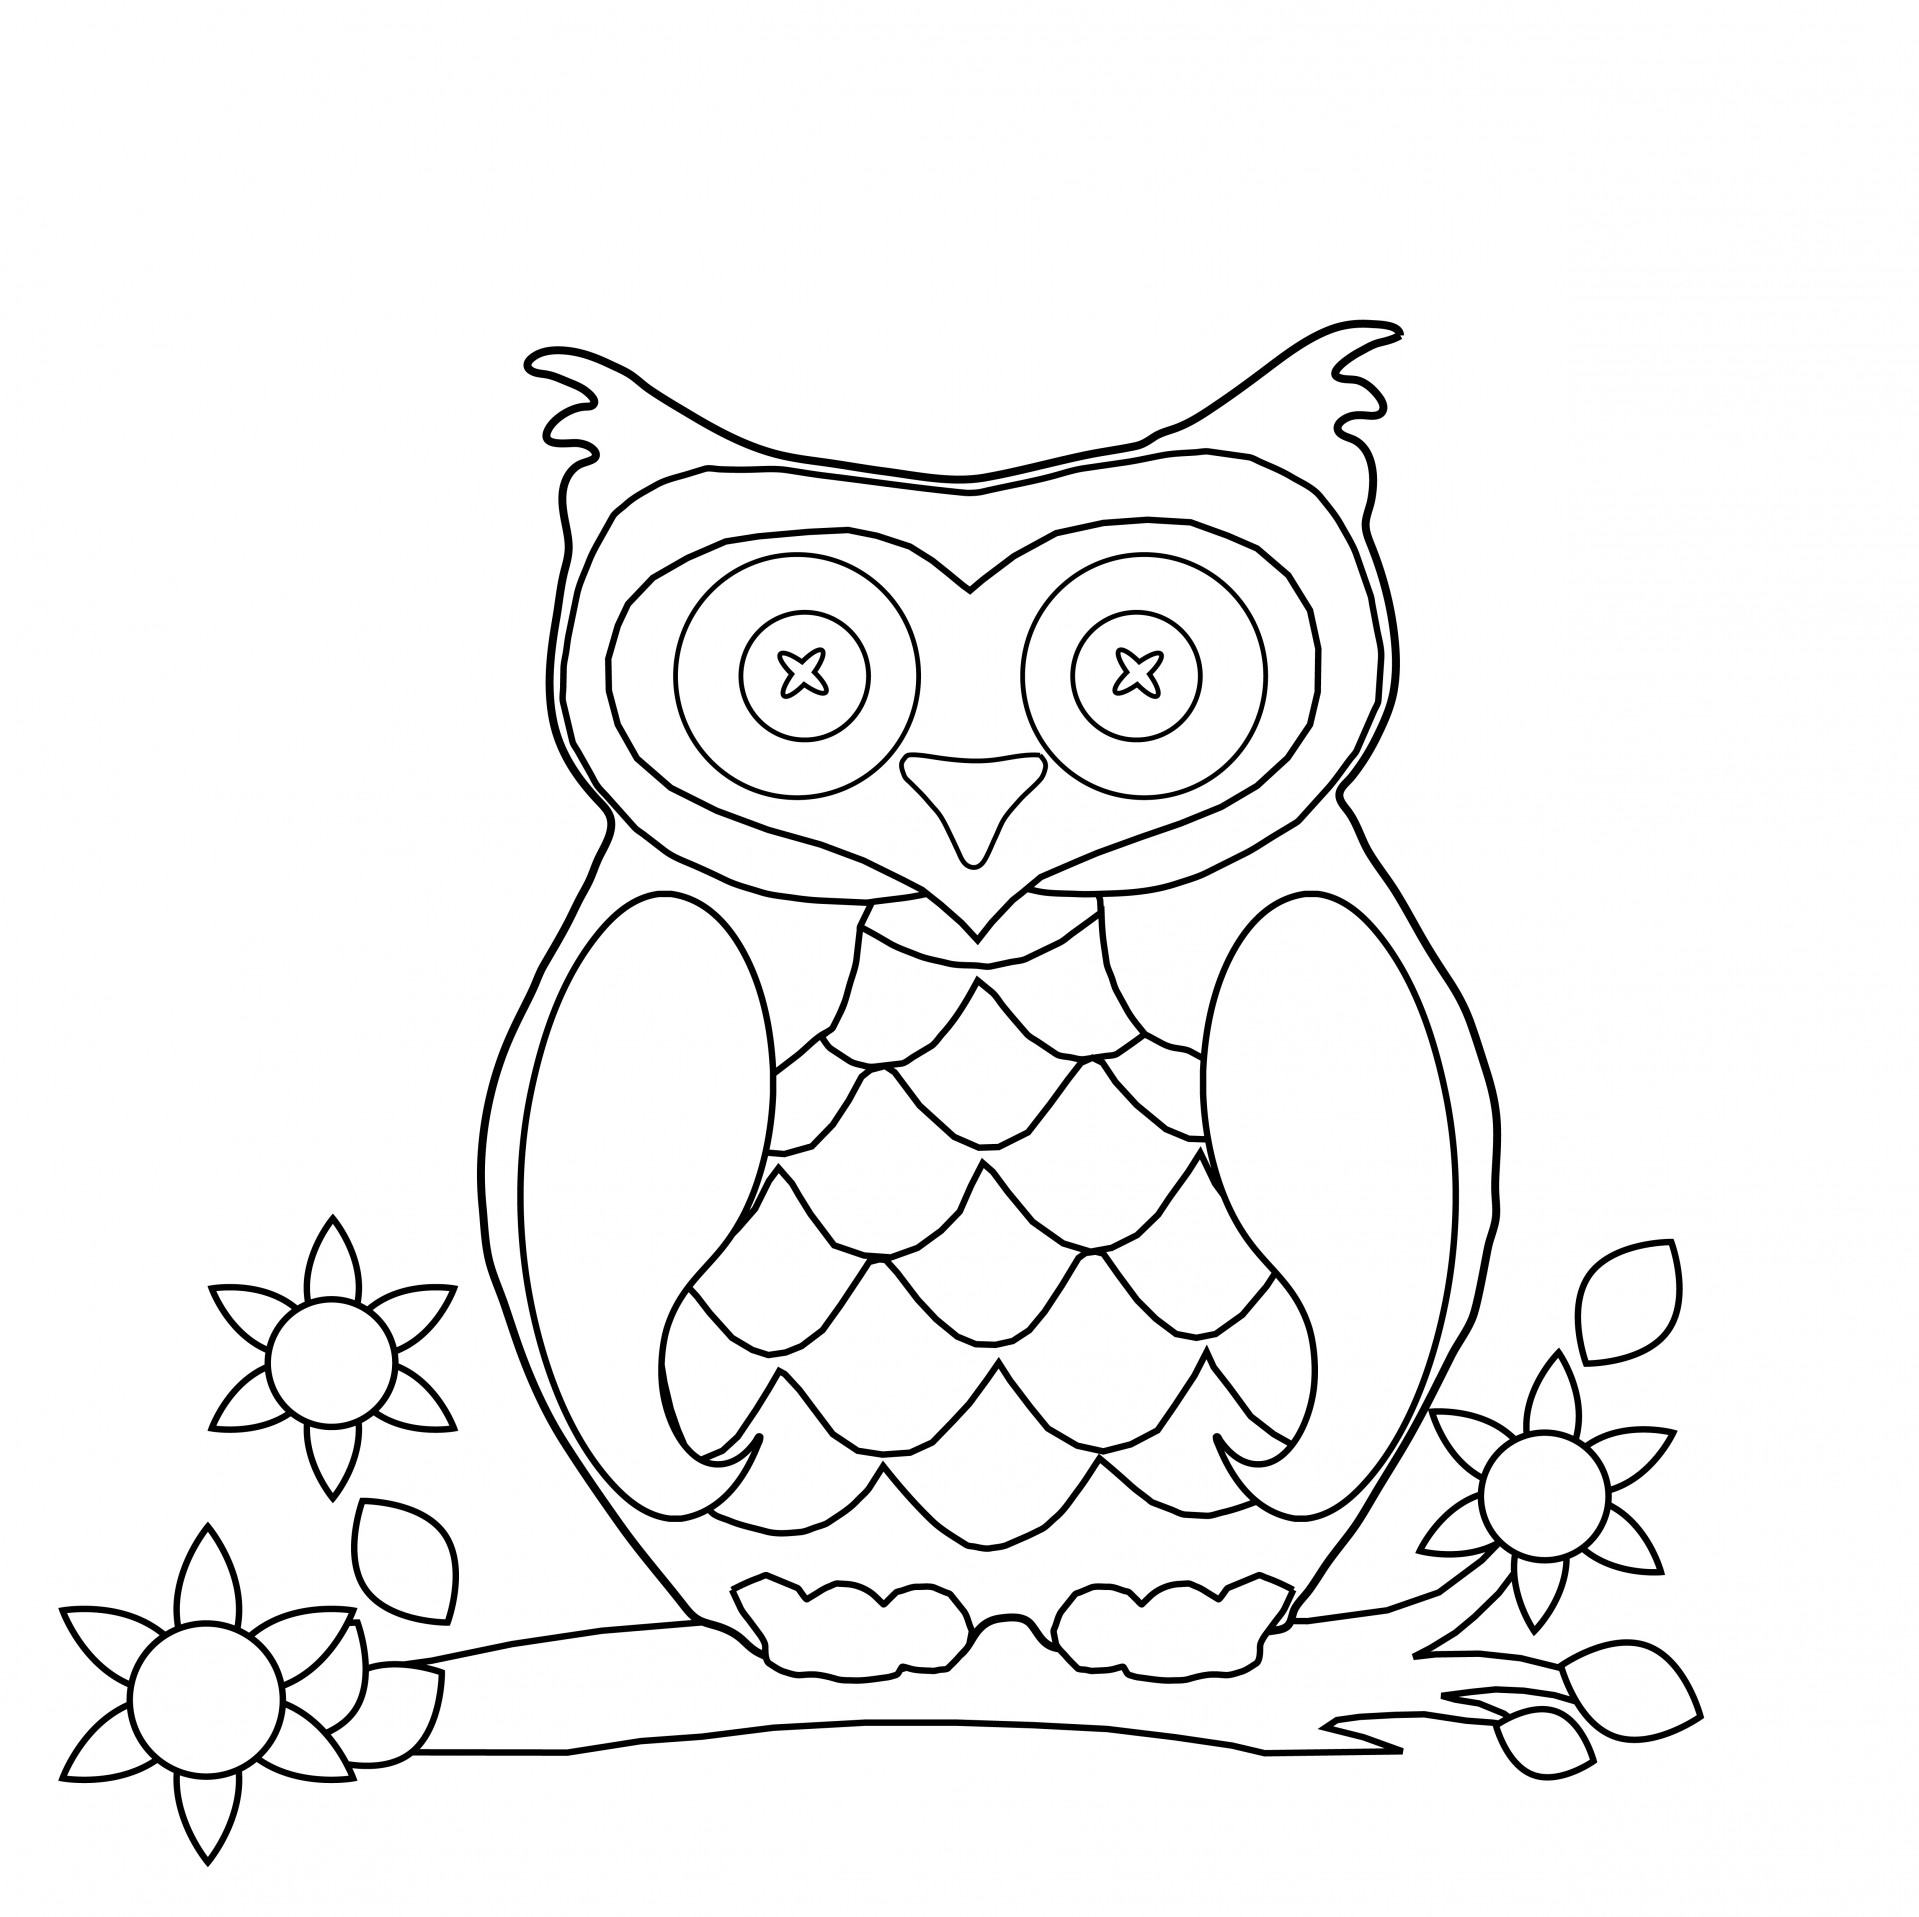 Owl free stock photo. Page clipart coloring graphic free